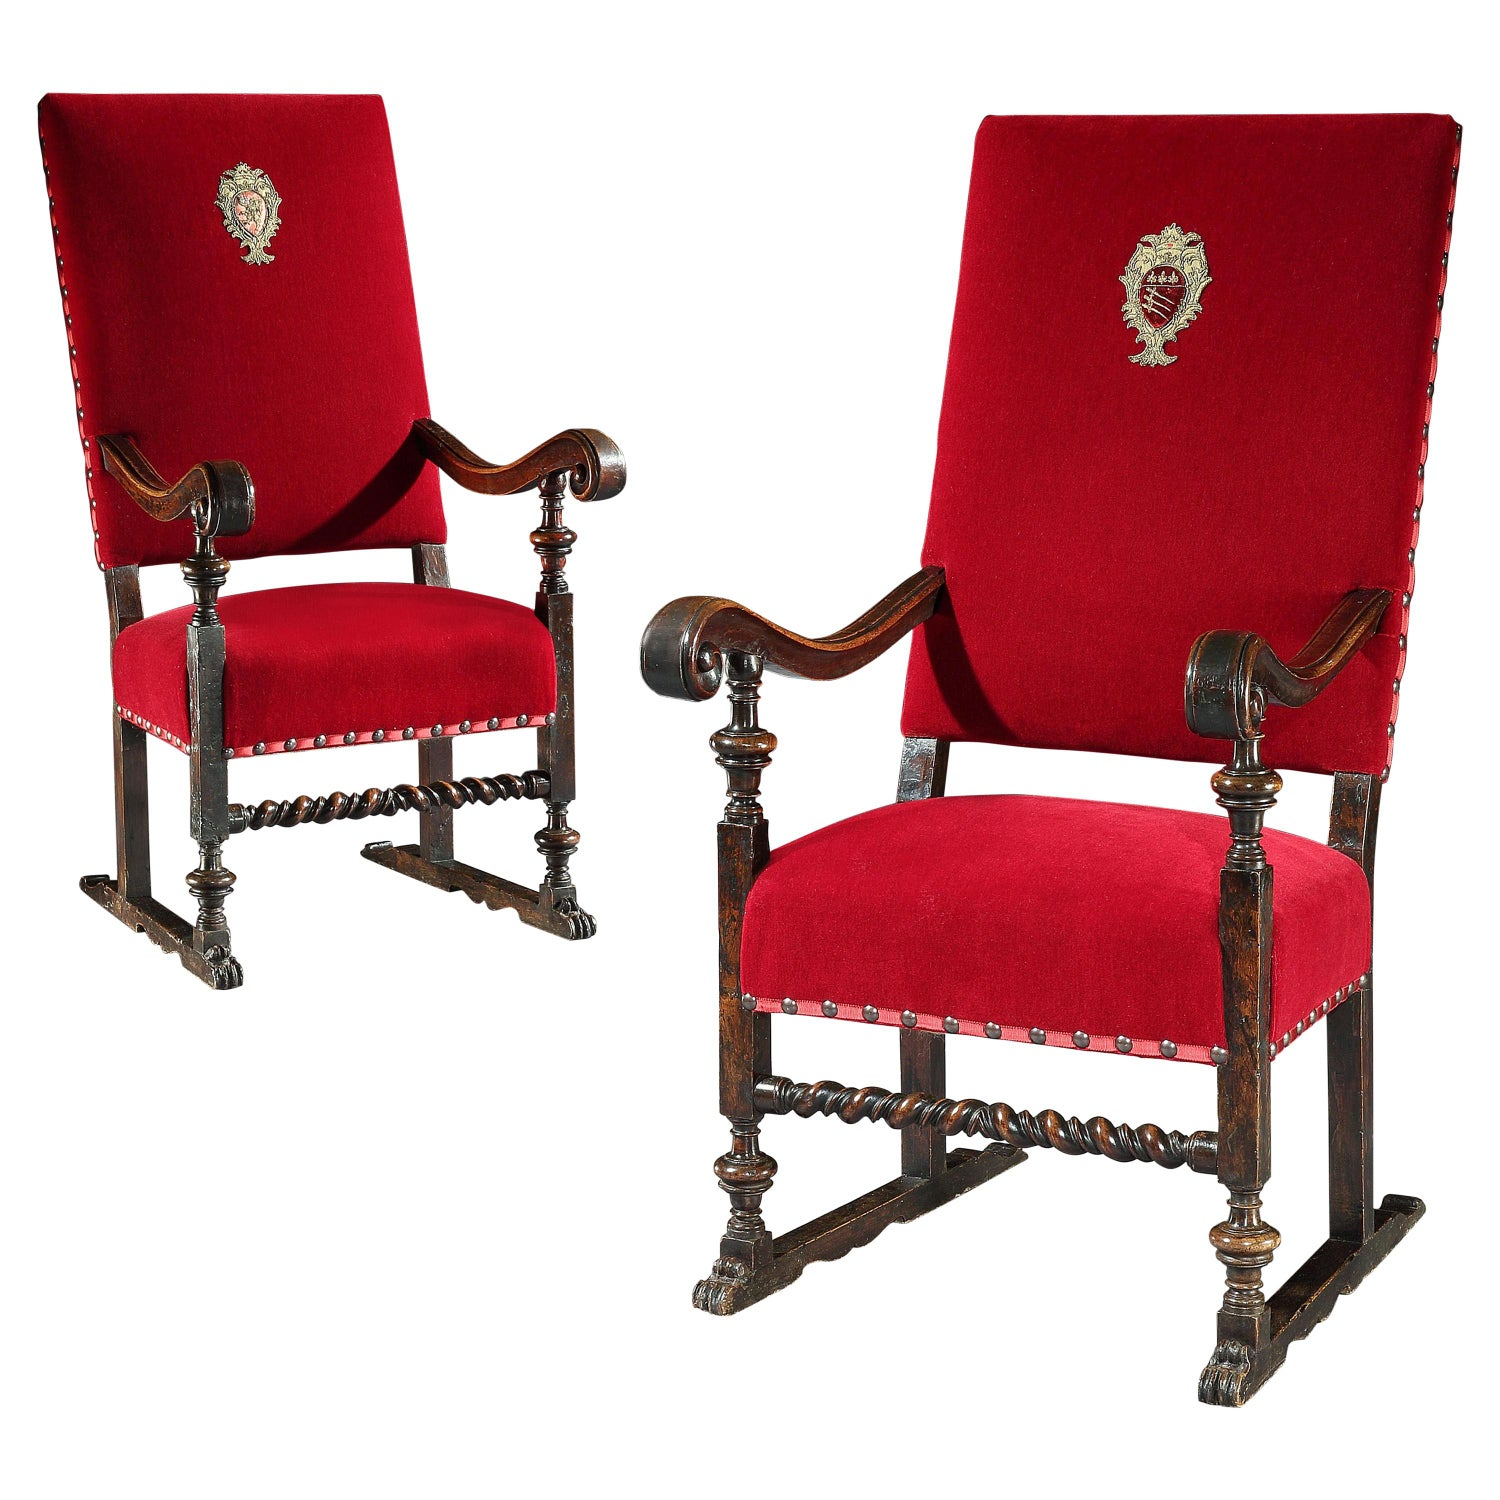 Armchair Throne Pair Italian Walnut Red Mohair Velvet Armorial Renaissance